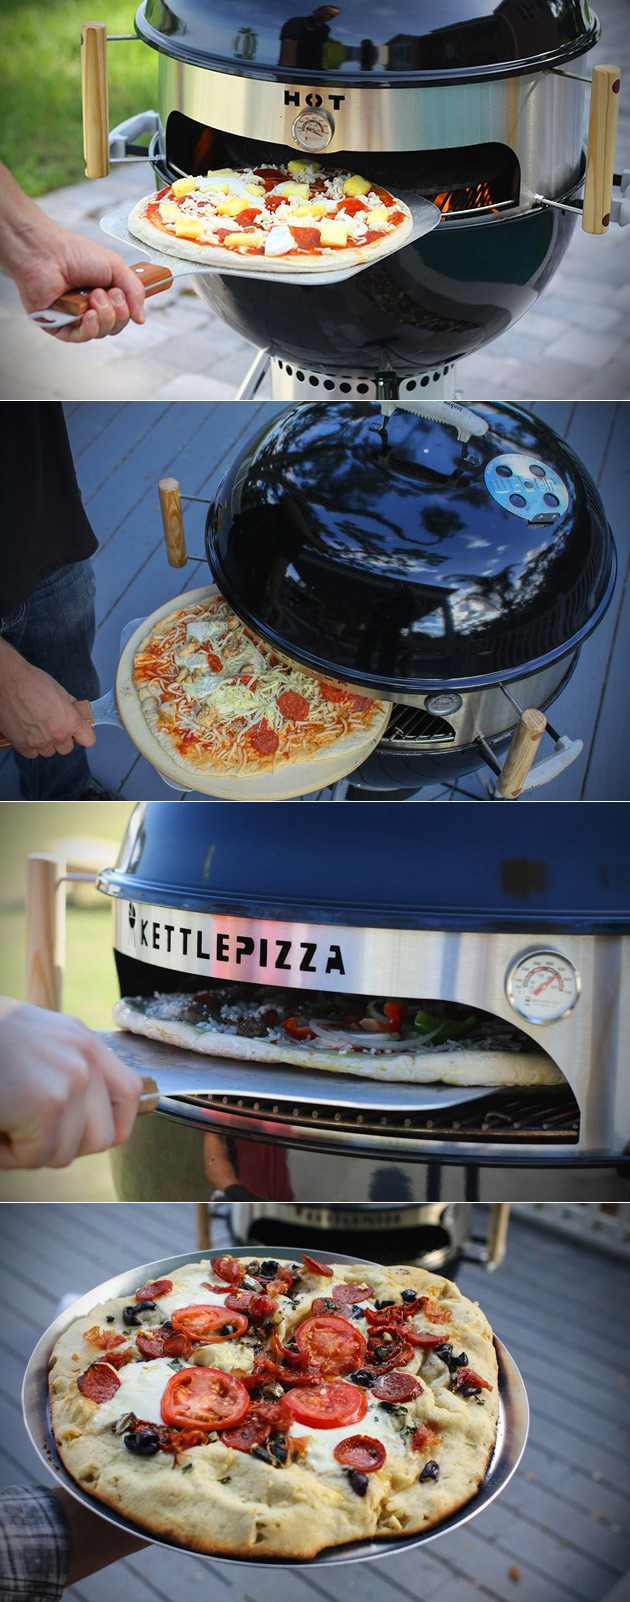 KettlePizza Grill Oven